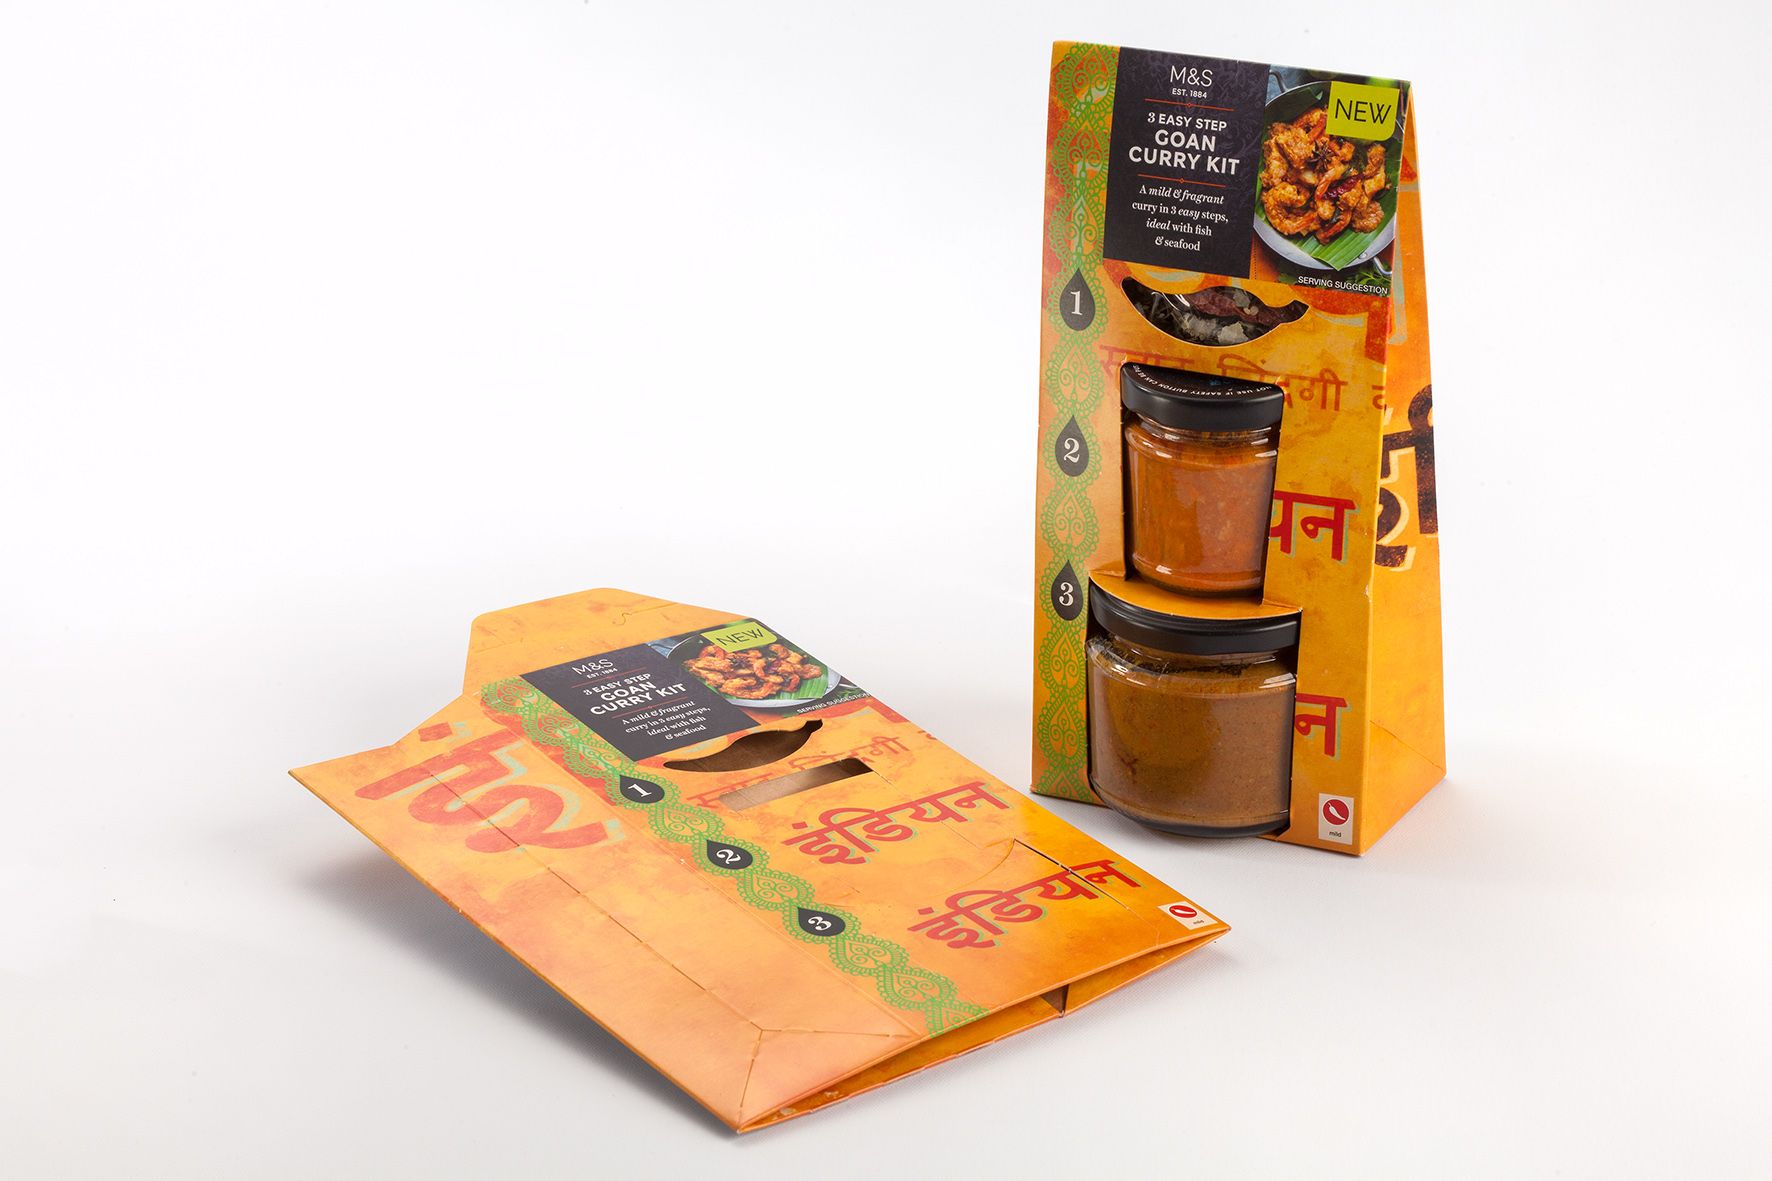 M&S Curry Kit